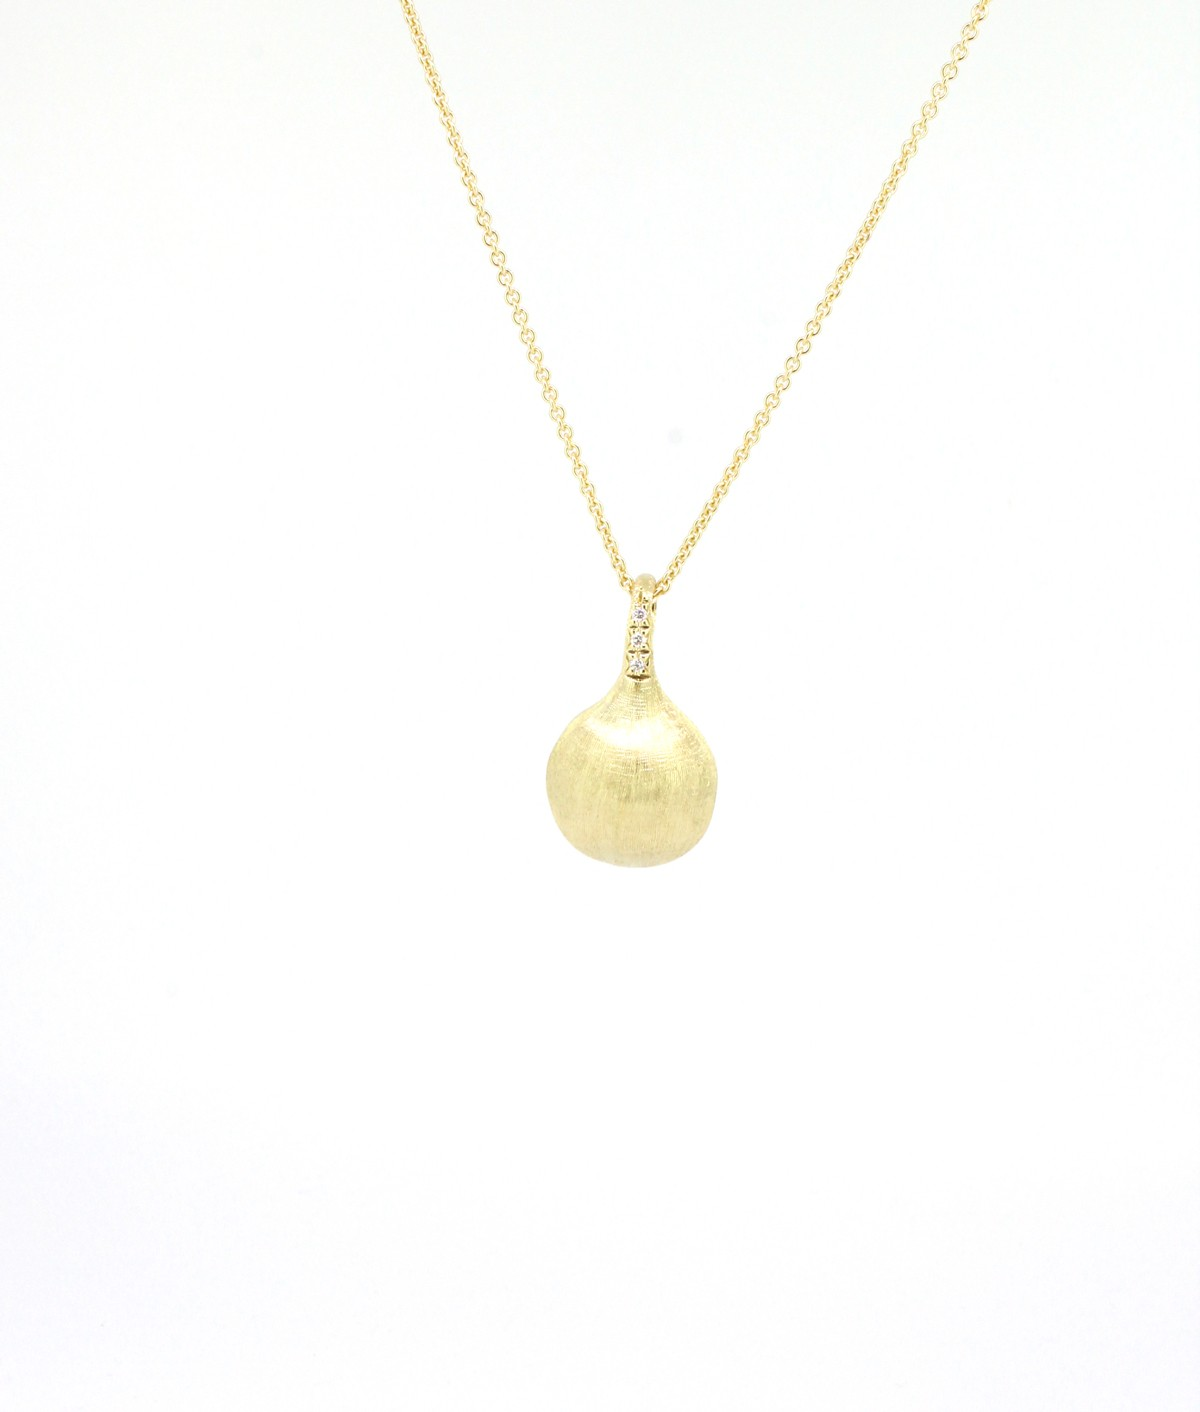 Kette Africa 18ct Gold - Marco Bicego - CB2493B